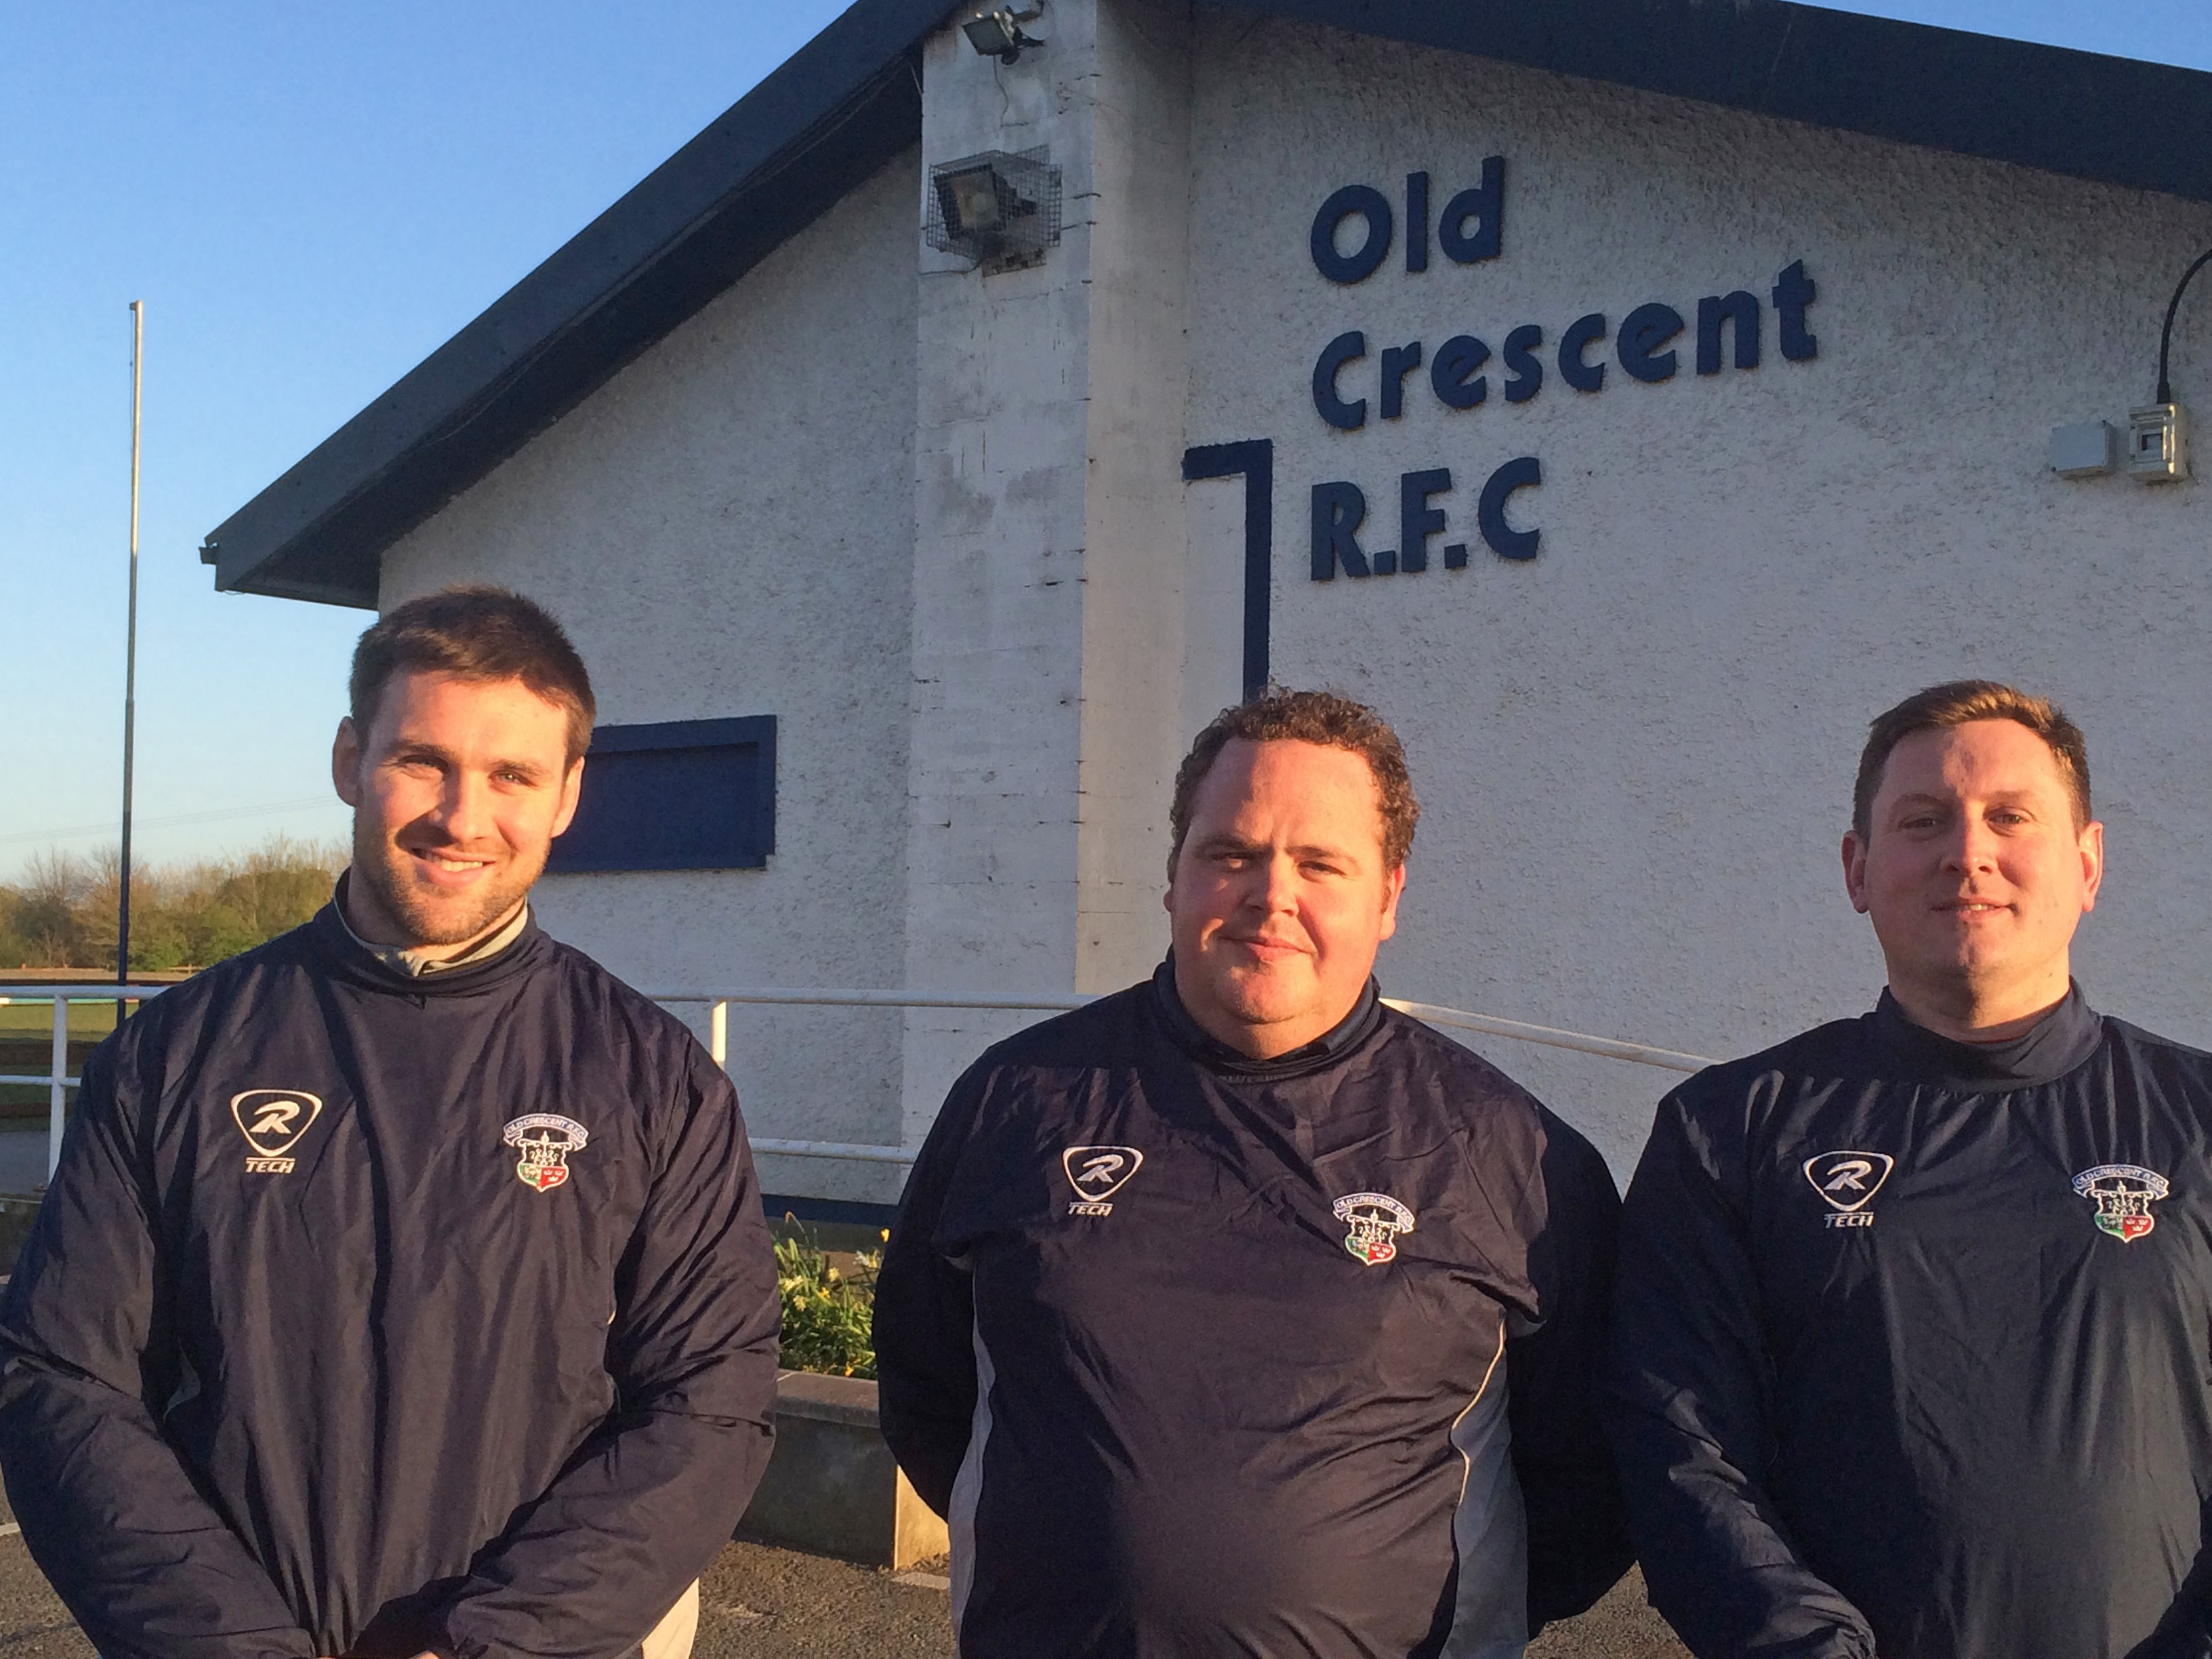 Old Crescent RFC senior rugby management team, 2014-15